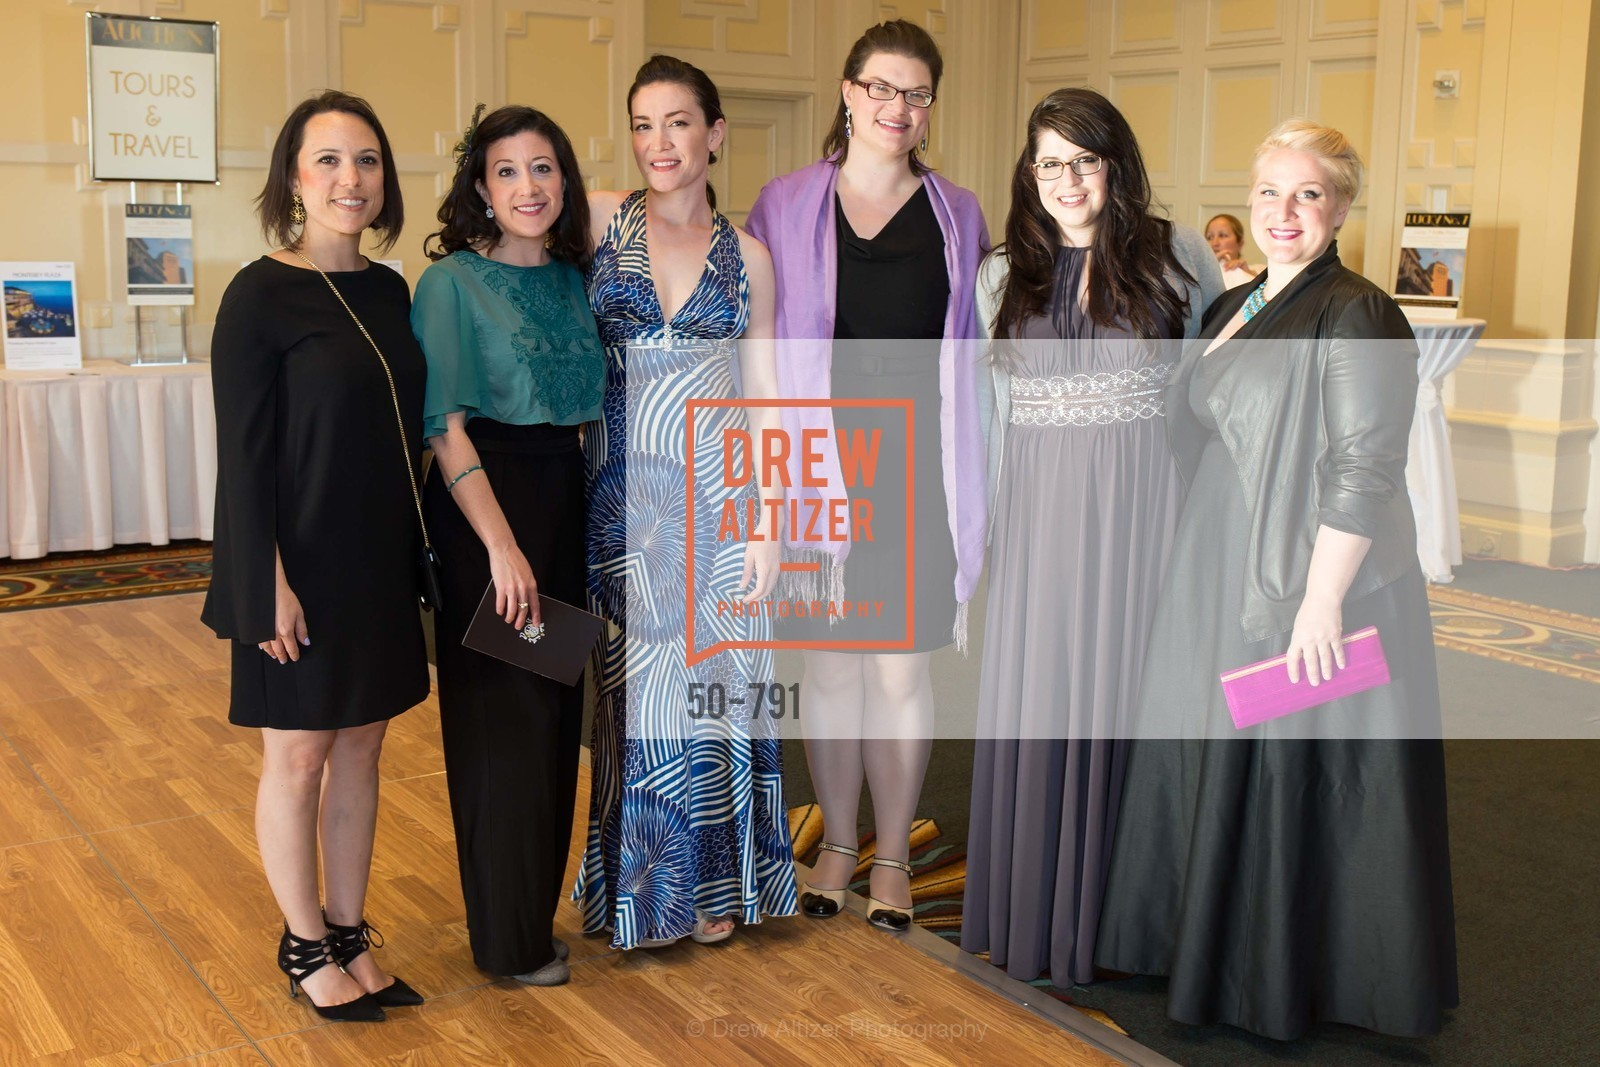 Laura Pallin, Eiliesh Tuffy, Aisha Fike, Gretchen Hilyard, Susan Parks, Melissa Williams, SAN FRANCISCO HERITAGE Soiree 2015, US, April 18th, 2015,Drew Altizer, Drew Altizer Photography, full-service agency, private events, San Francisco photographer, photographer california